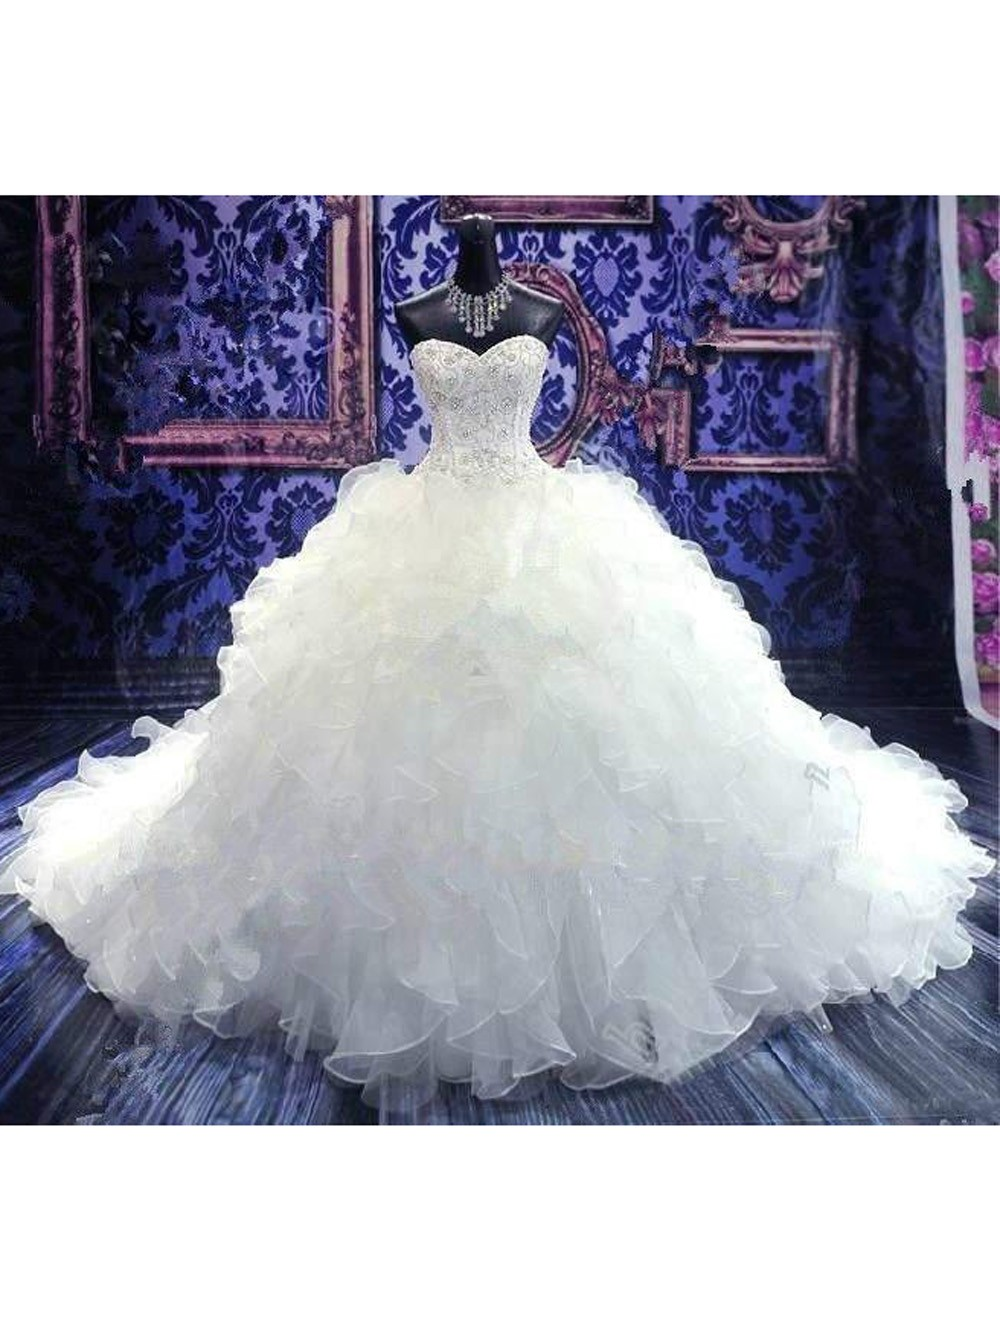 2016 Real Image Wedding Dresses Vestidos de Novia Luxury Sparkle Bling White Mermaid Sweetheart Beads Lace Up Organza Wedding Dress Bridal Gowns